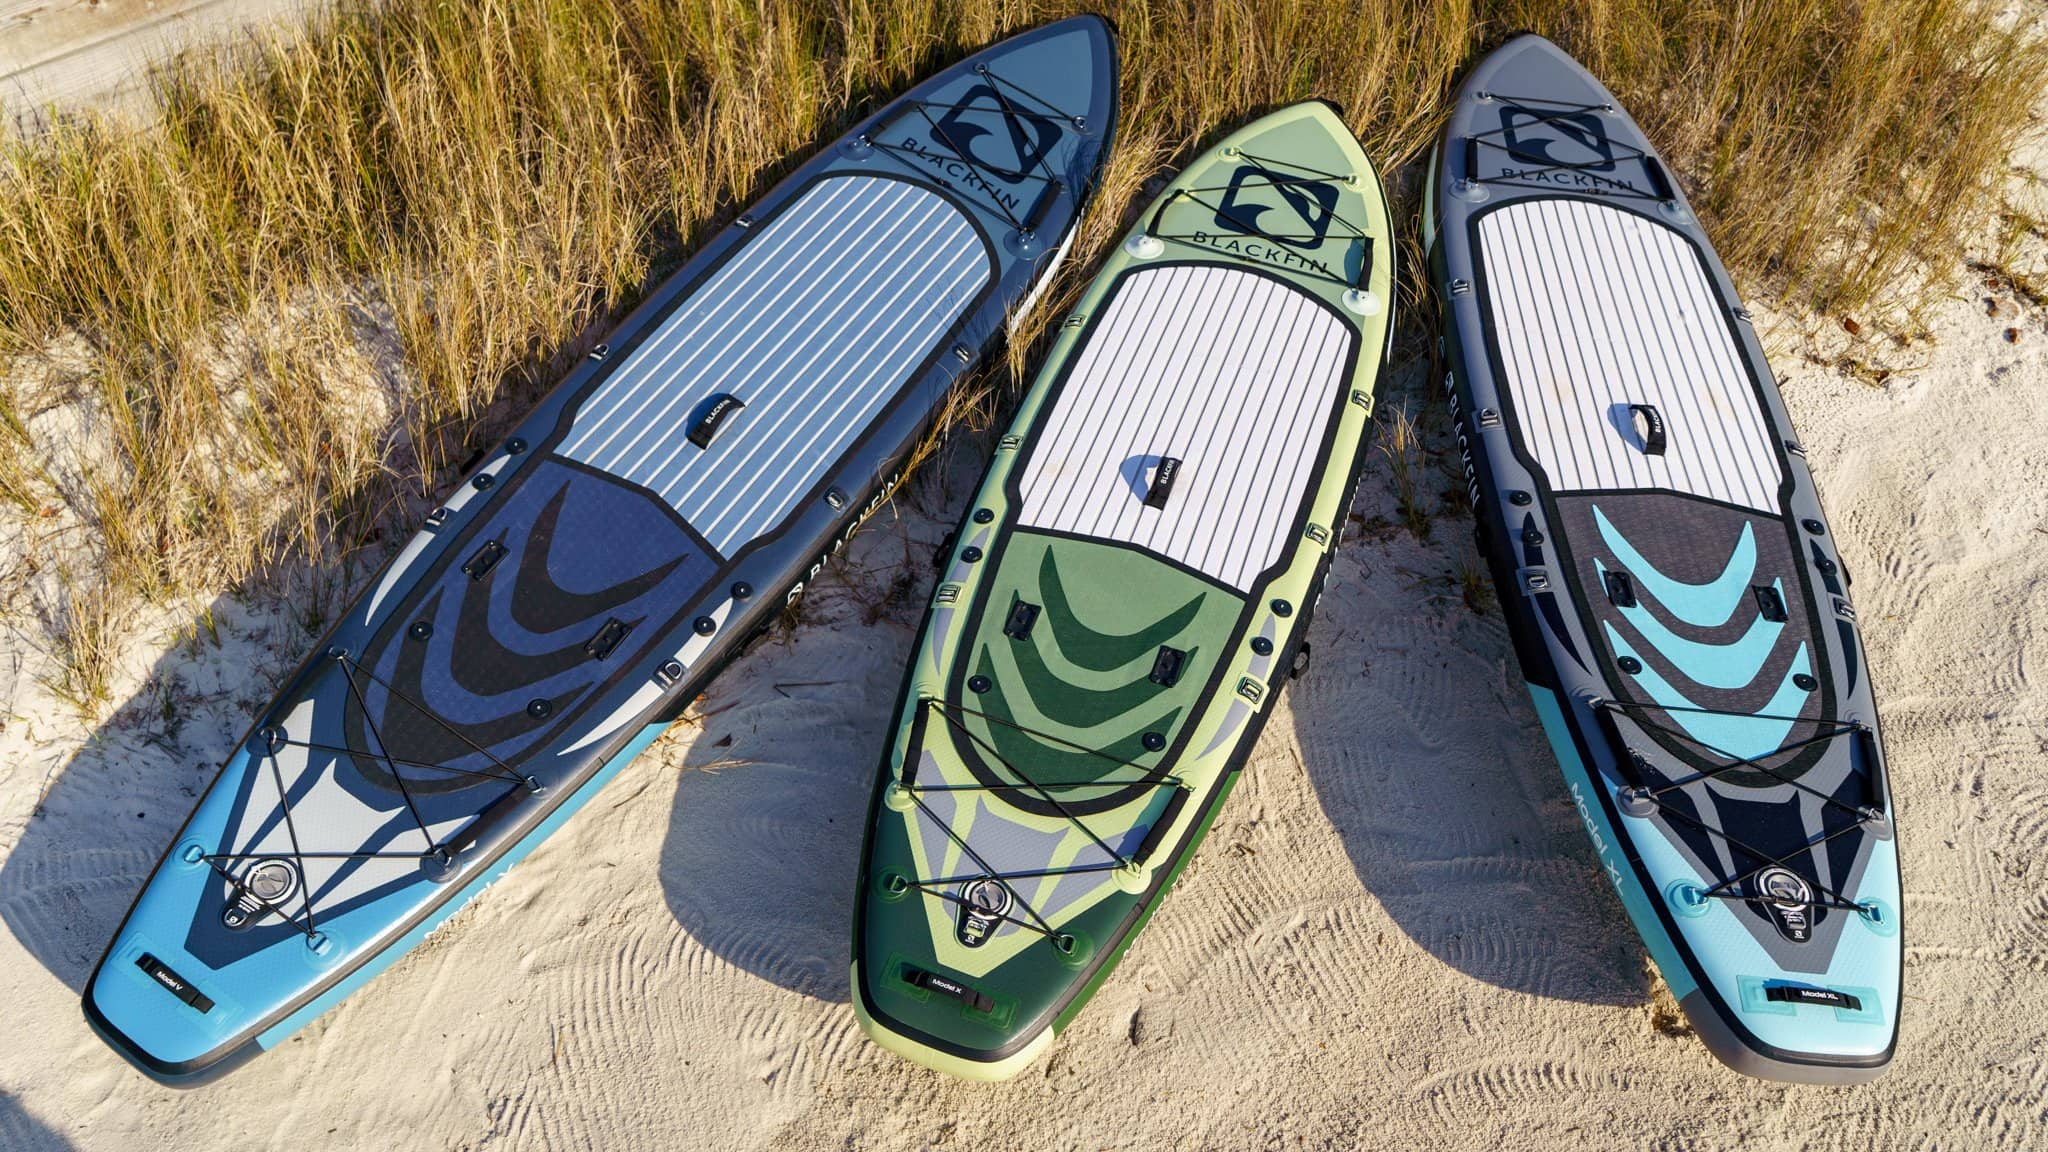 2021 Blackfin SUP Launch includes Model X, Model XL, and Model V